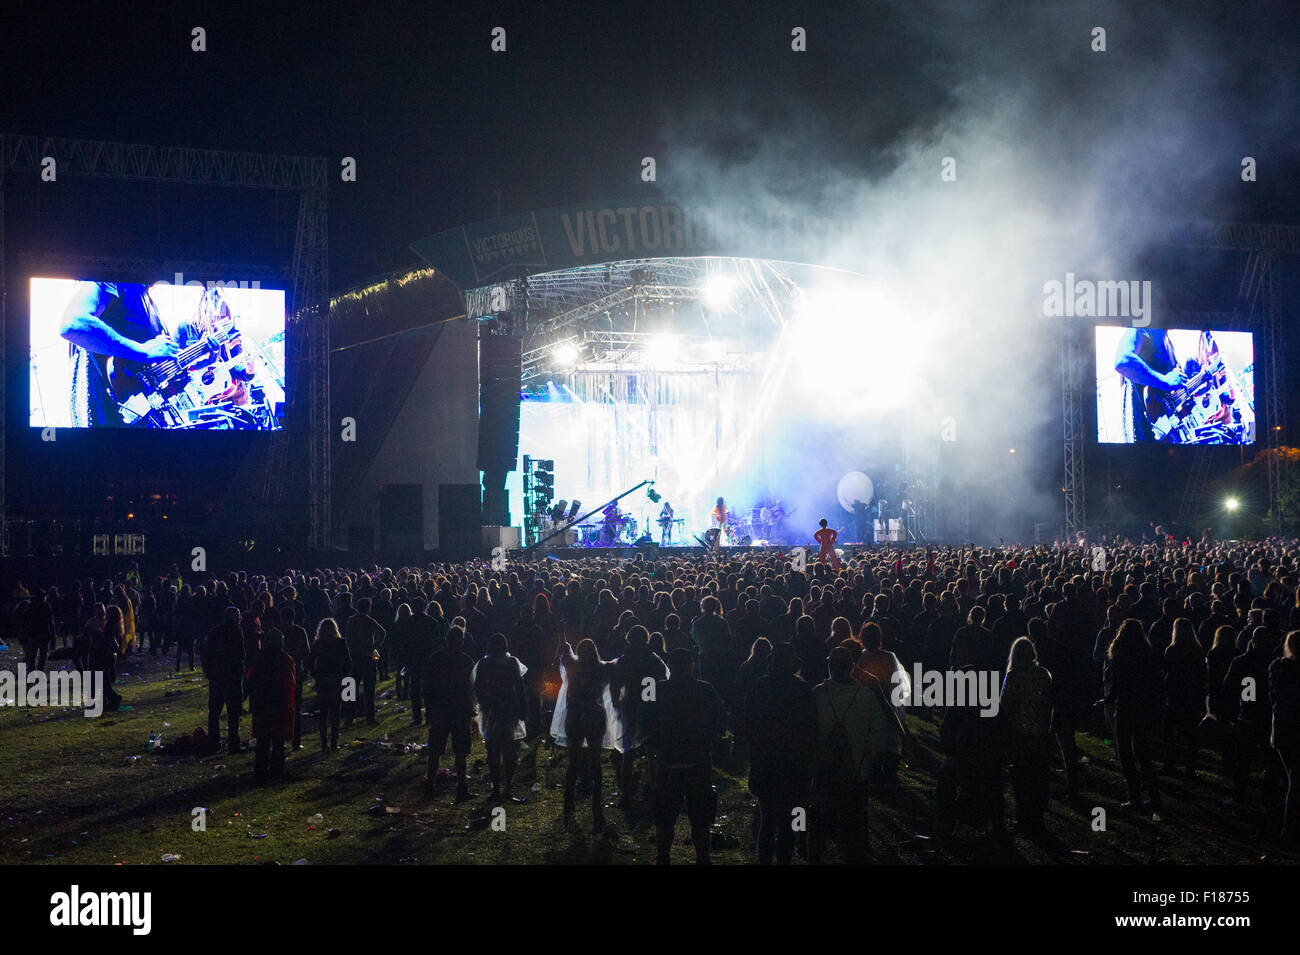 Portsmouth, UK. 29th August 2015. Victorious Festival - Saturday. A general view of the Common Stage with large Stock Photo